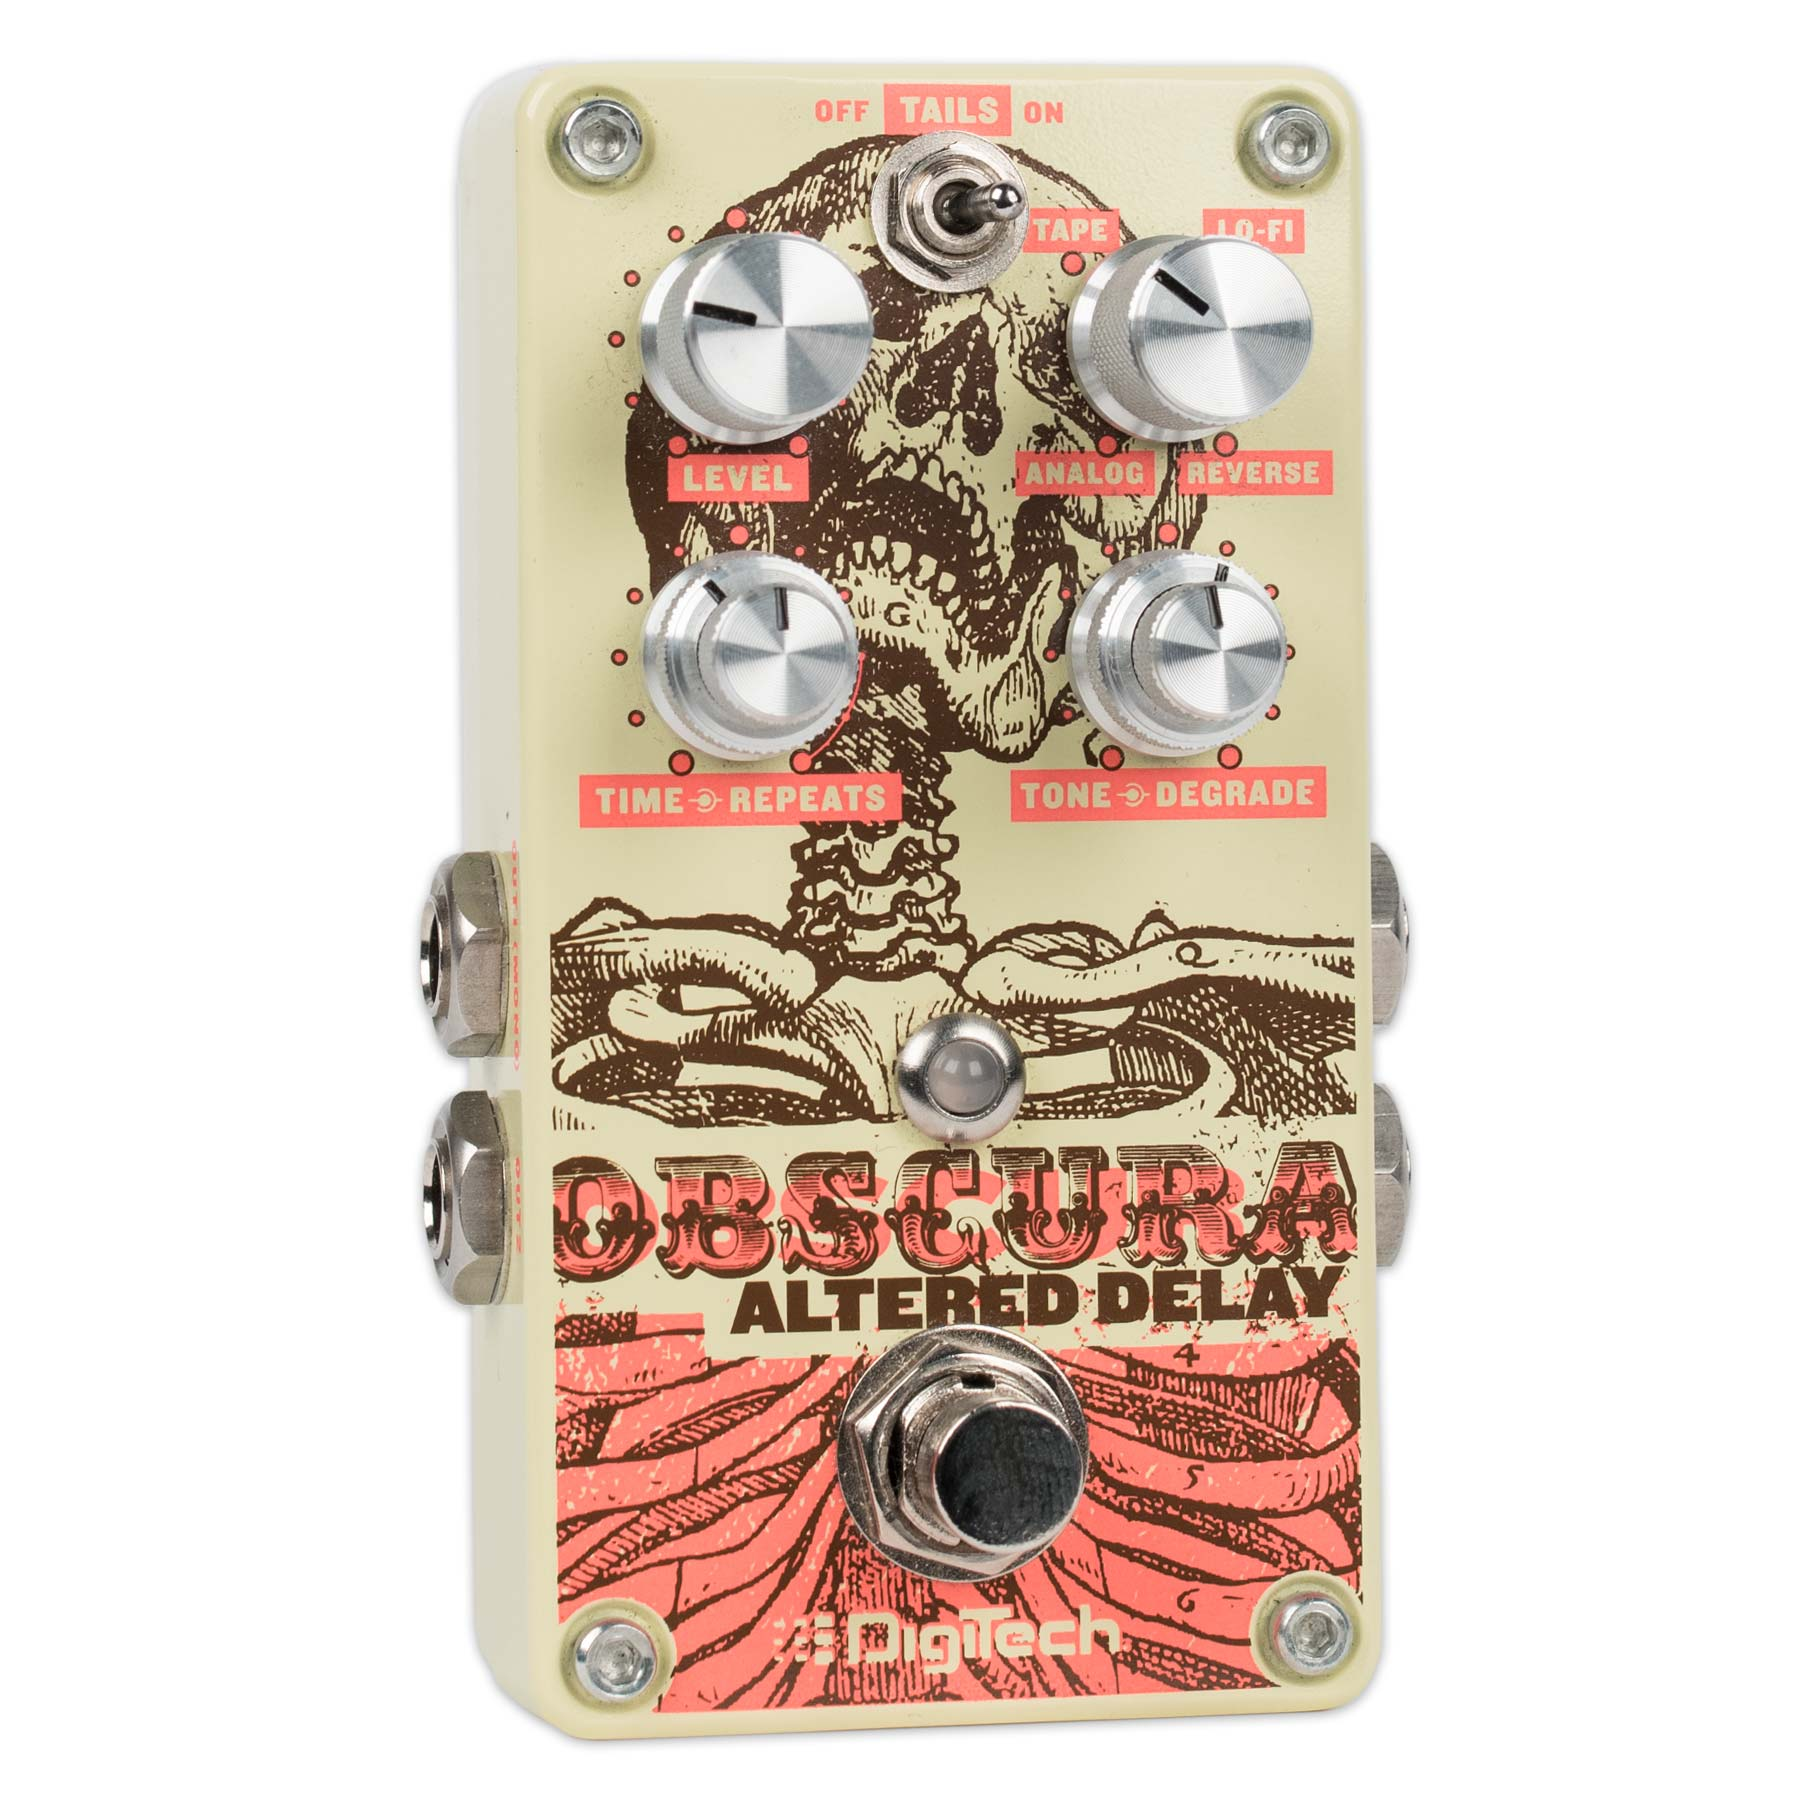 USED DIGITECH OBSCURA ALTERED DELAY W/BOX